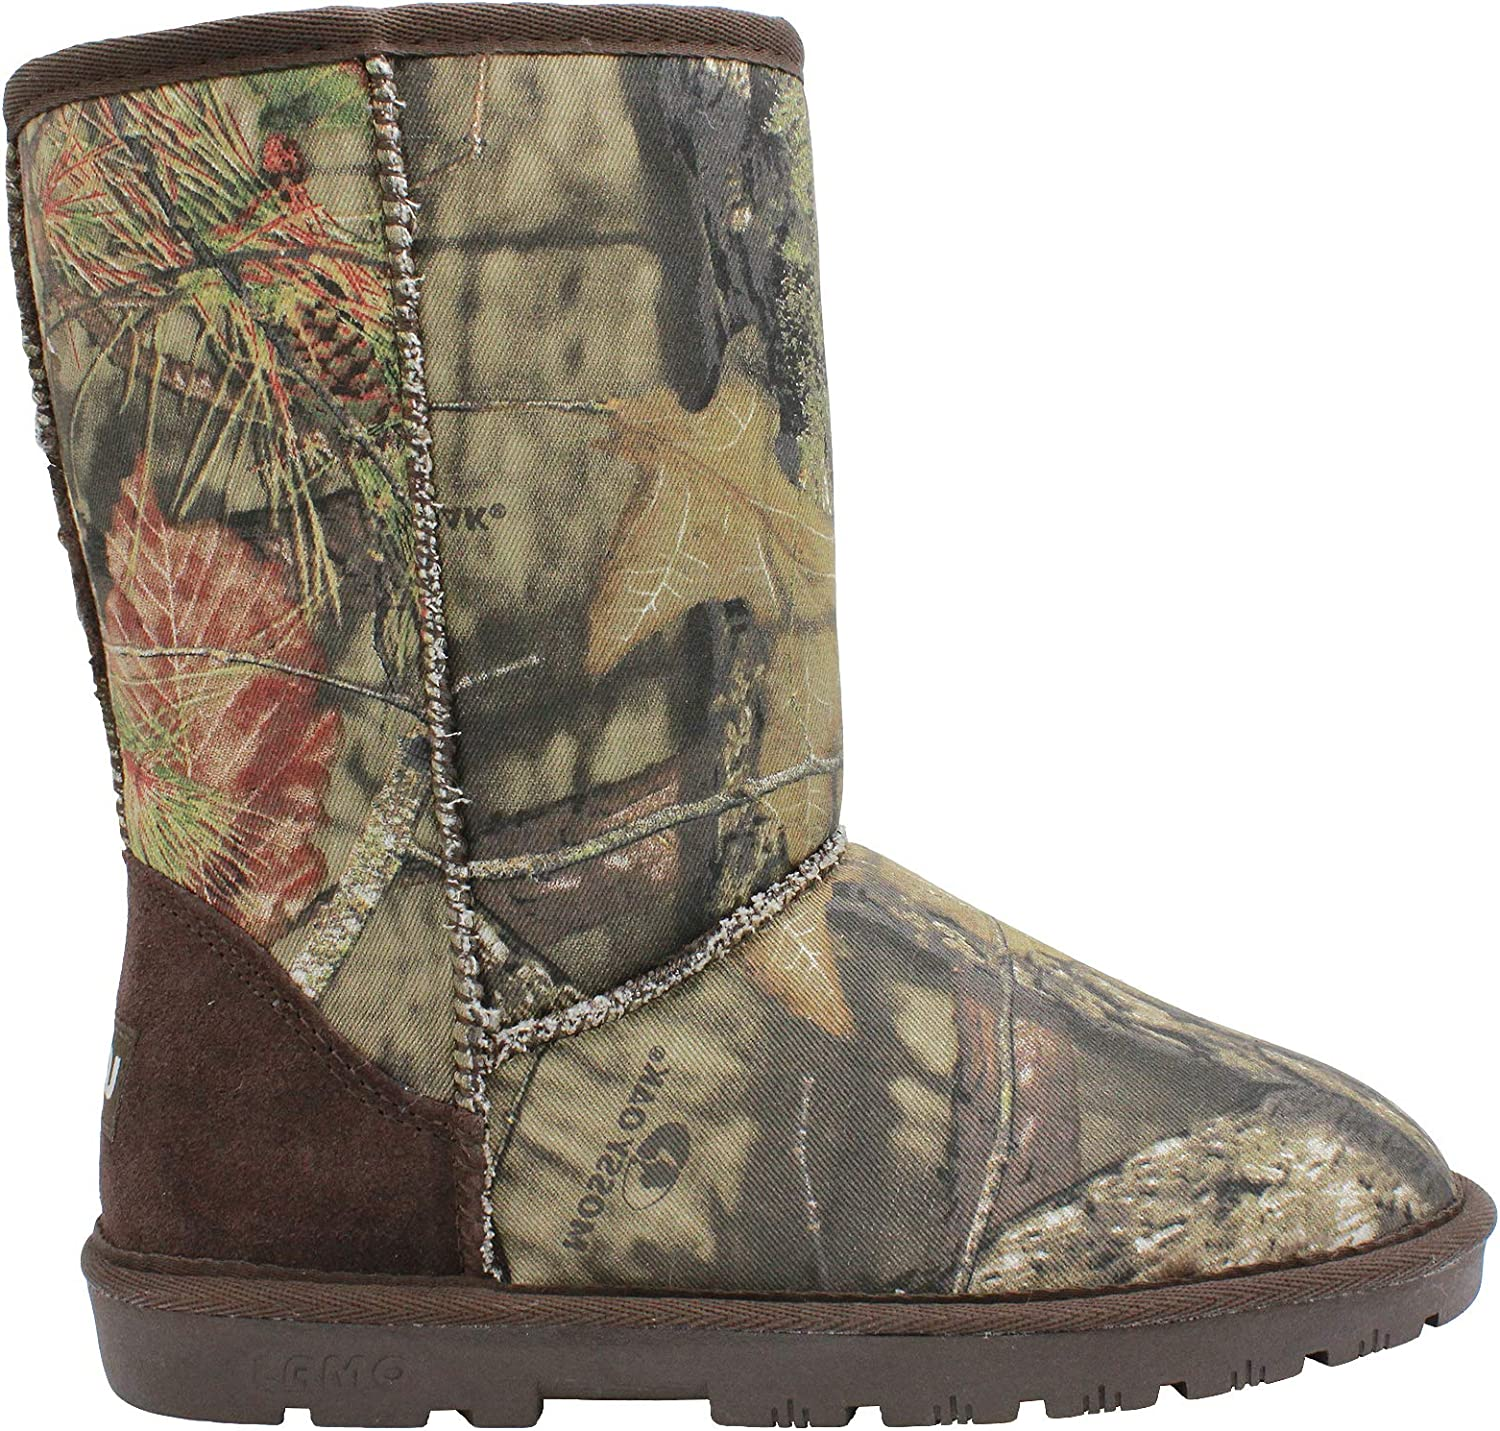 """Lamo Mossy Classic 9"""" Women's Boot - Country Roots Style"""